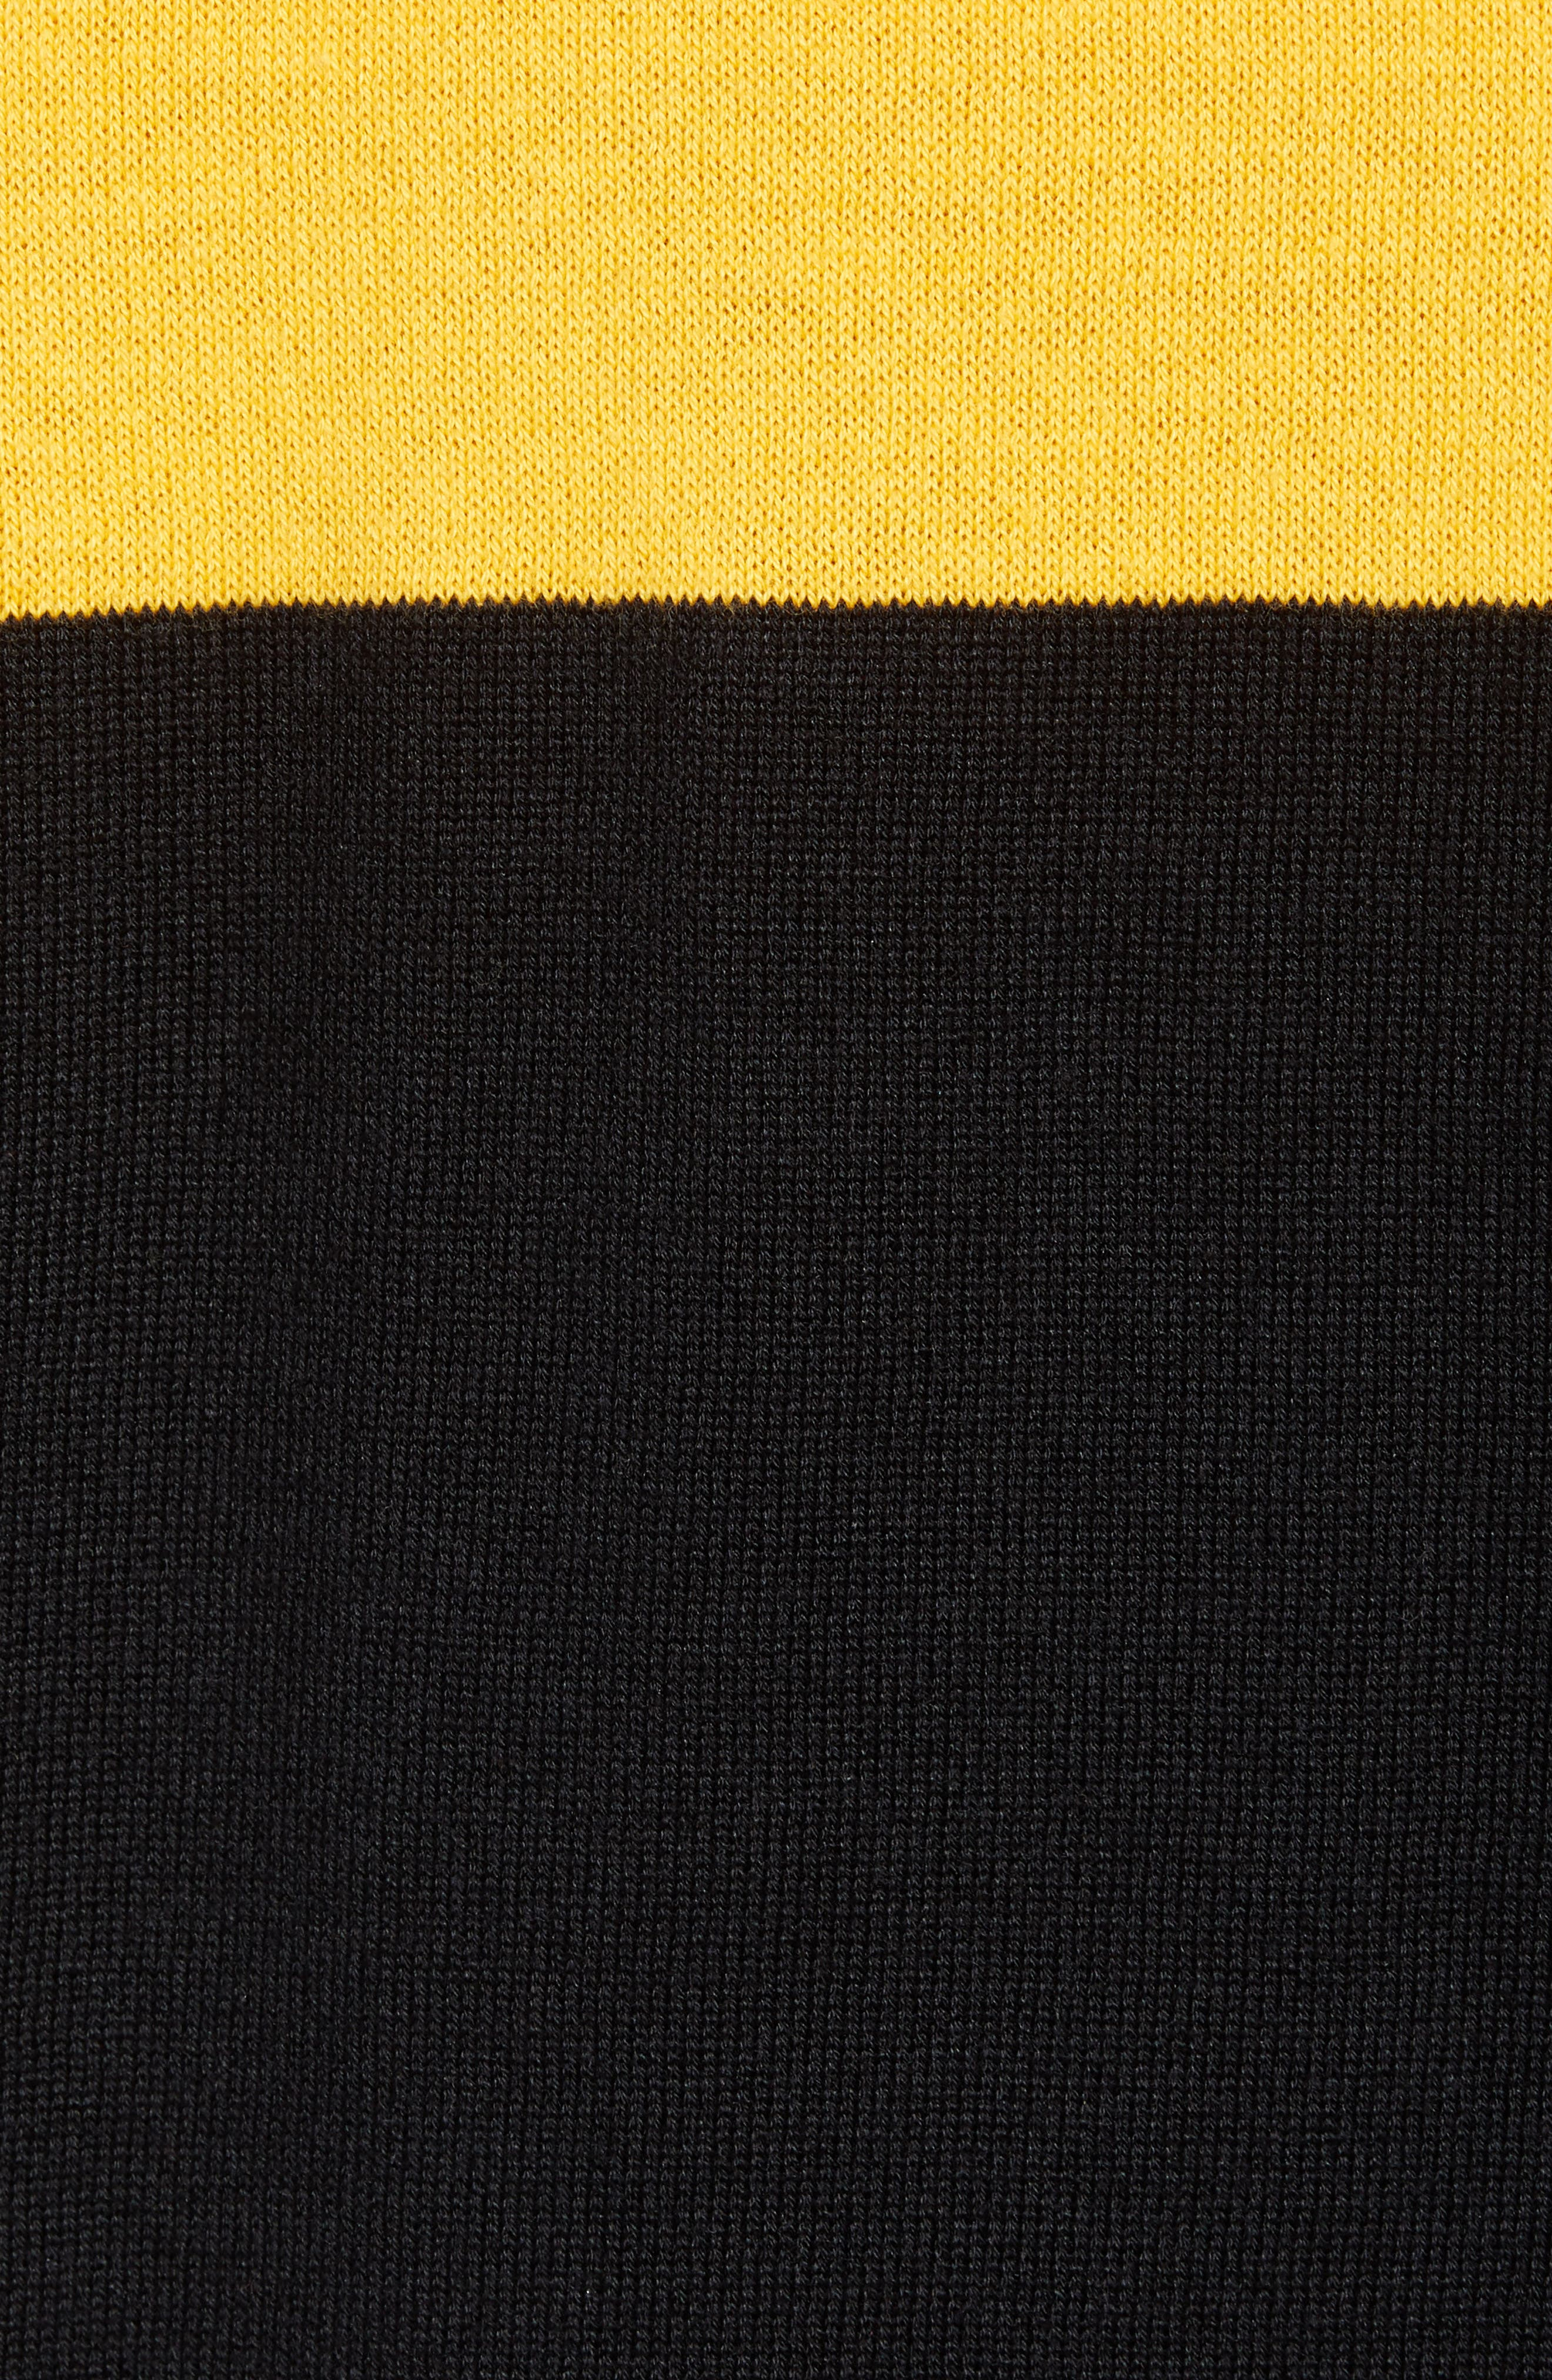 Rugby Stripe Sweater,                             Alternate thumbnail 5, color,                             BLACK YELLOW RUGBY STRIPE